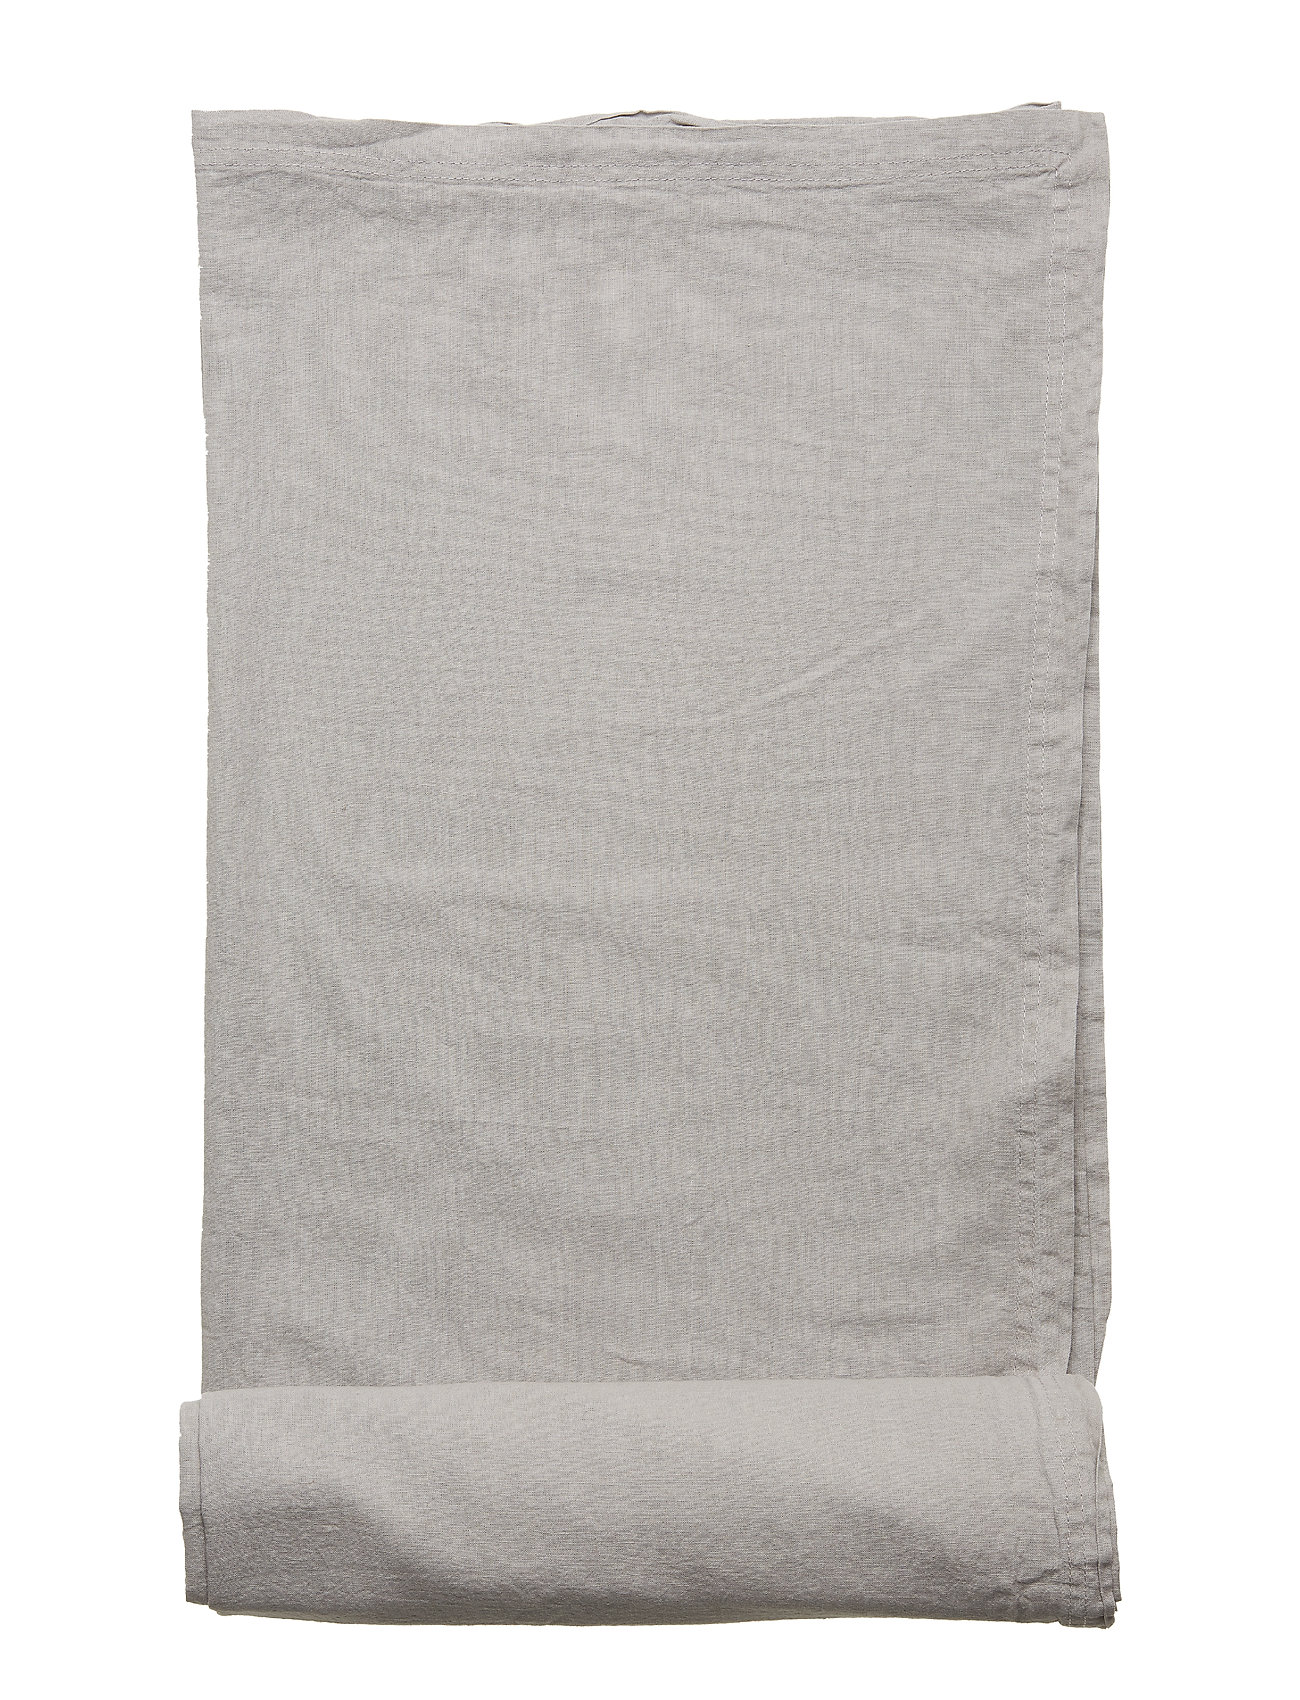 Gripsholm TABLE CLOTH LINEN BLEND - SMOKE